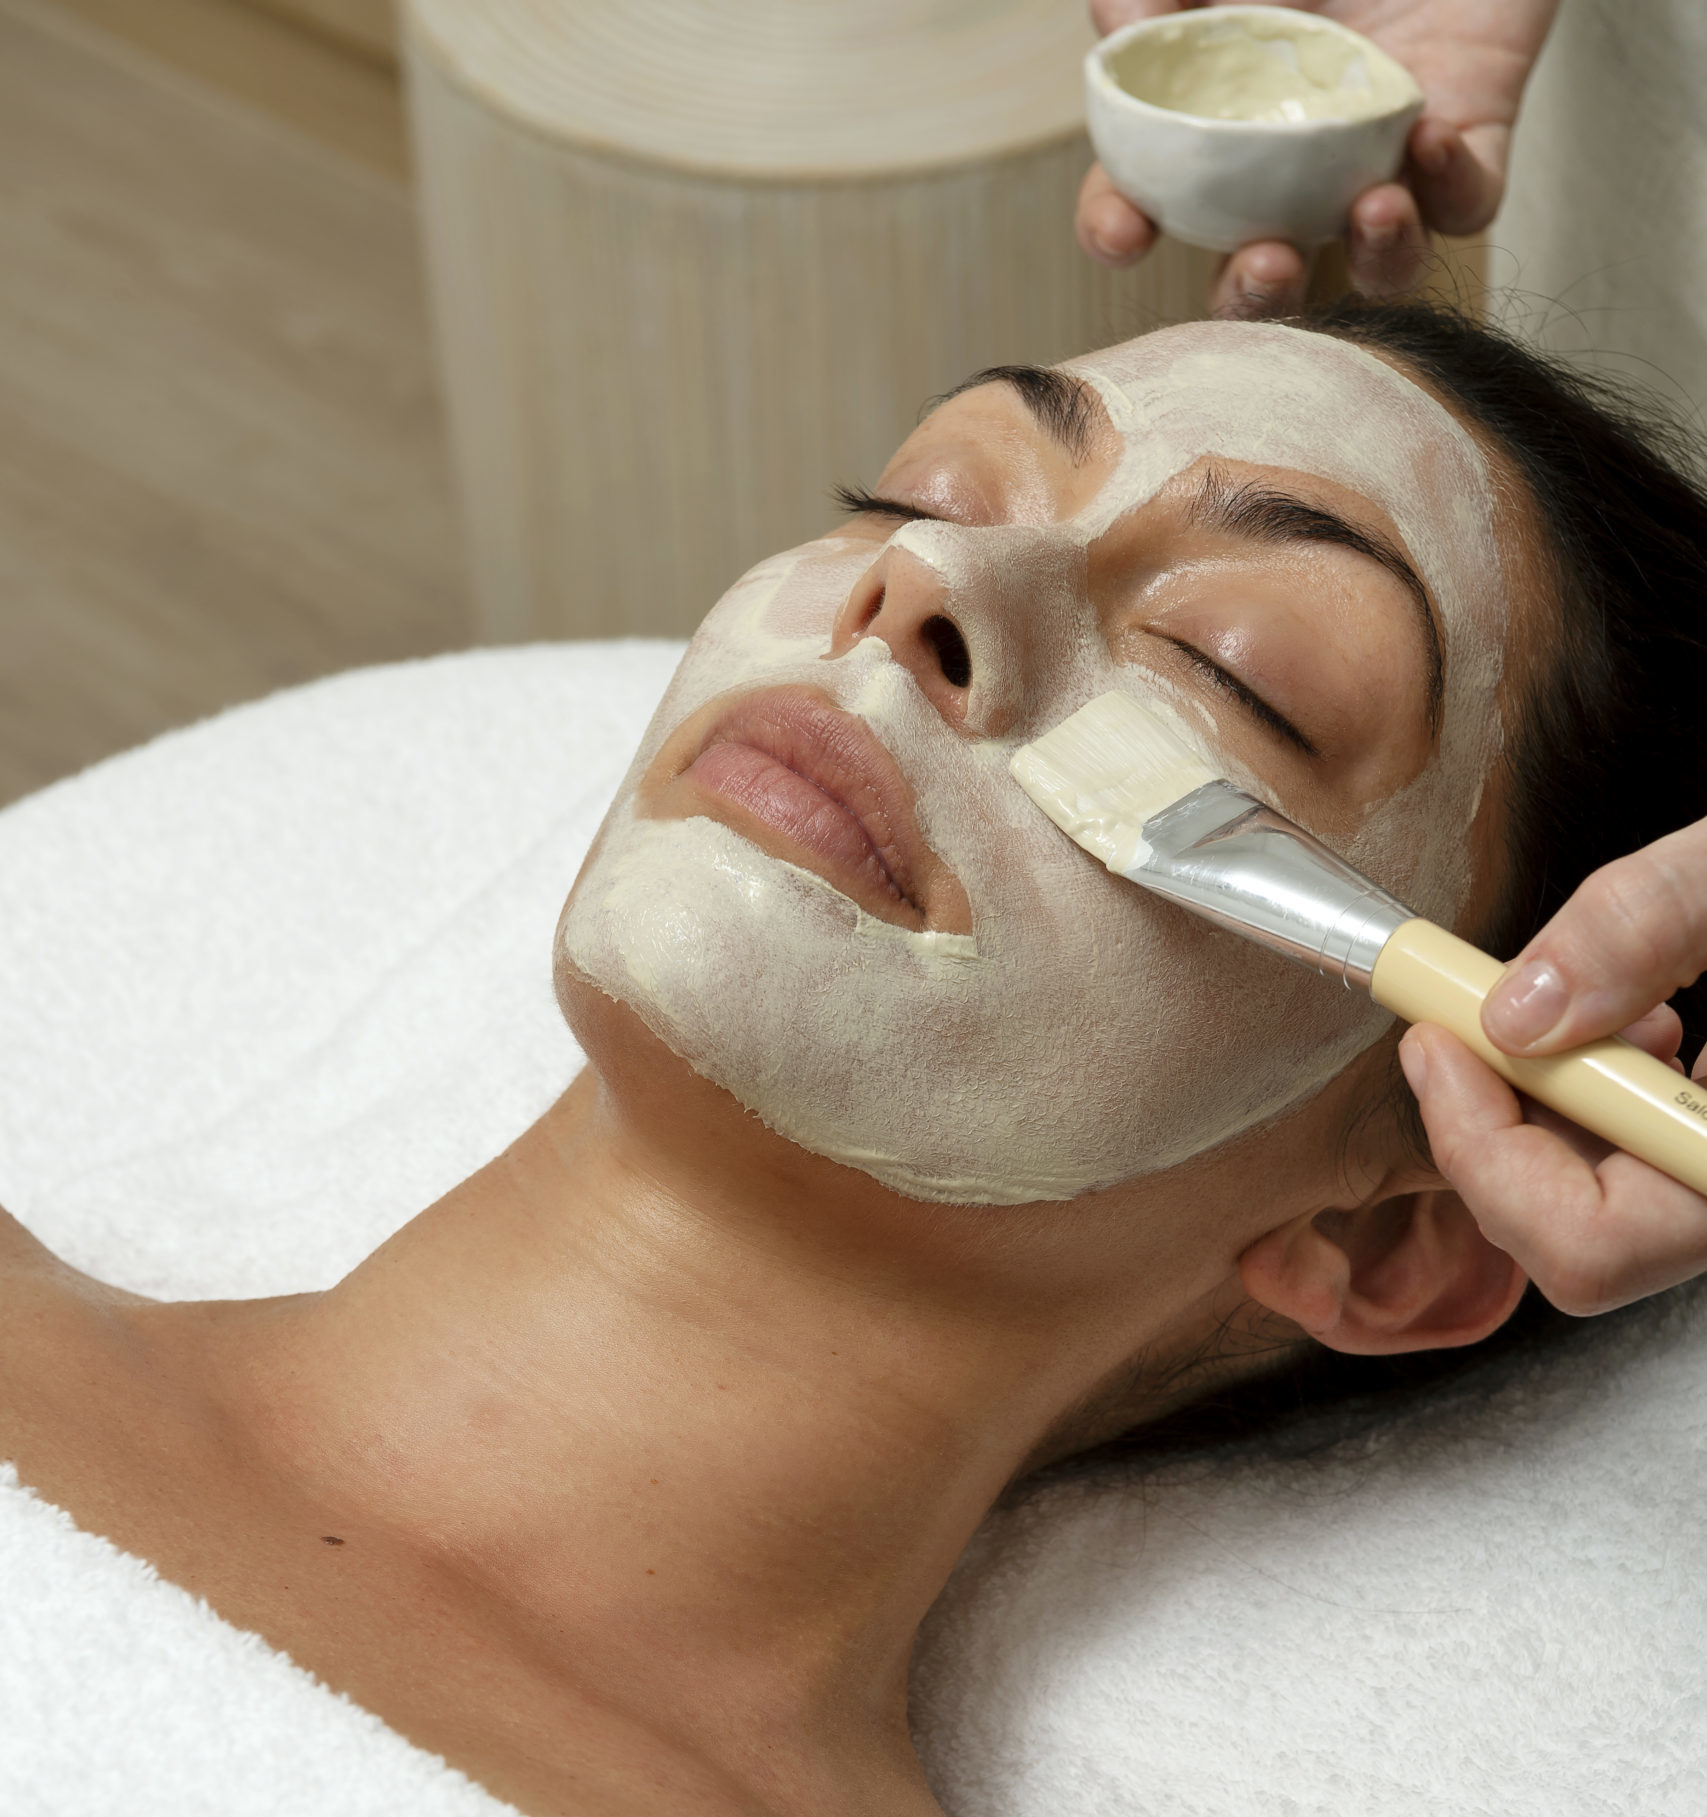 A paint brush applies a treatment to a woman's face